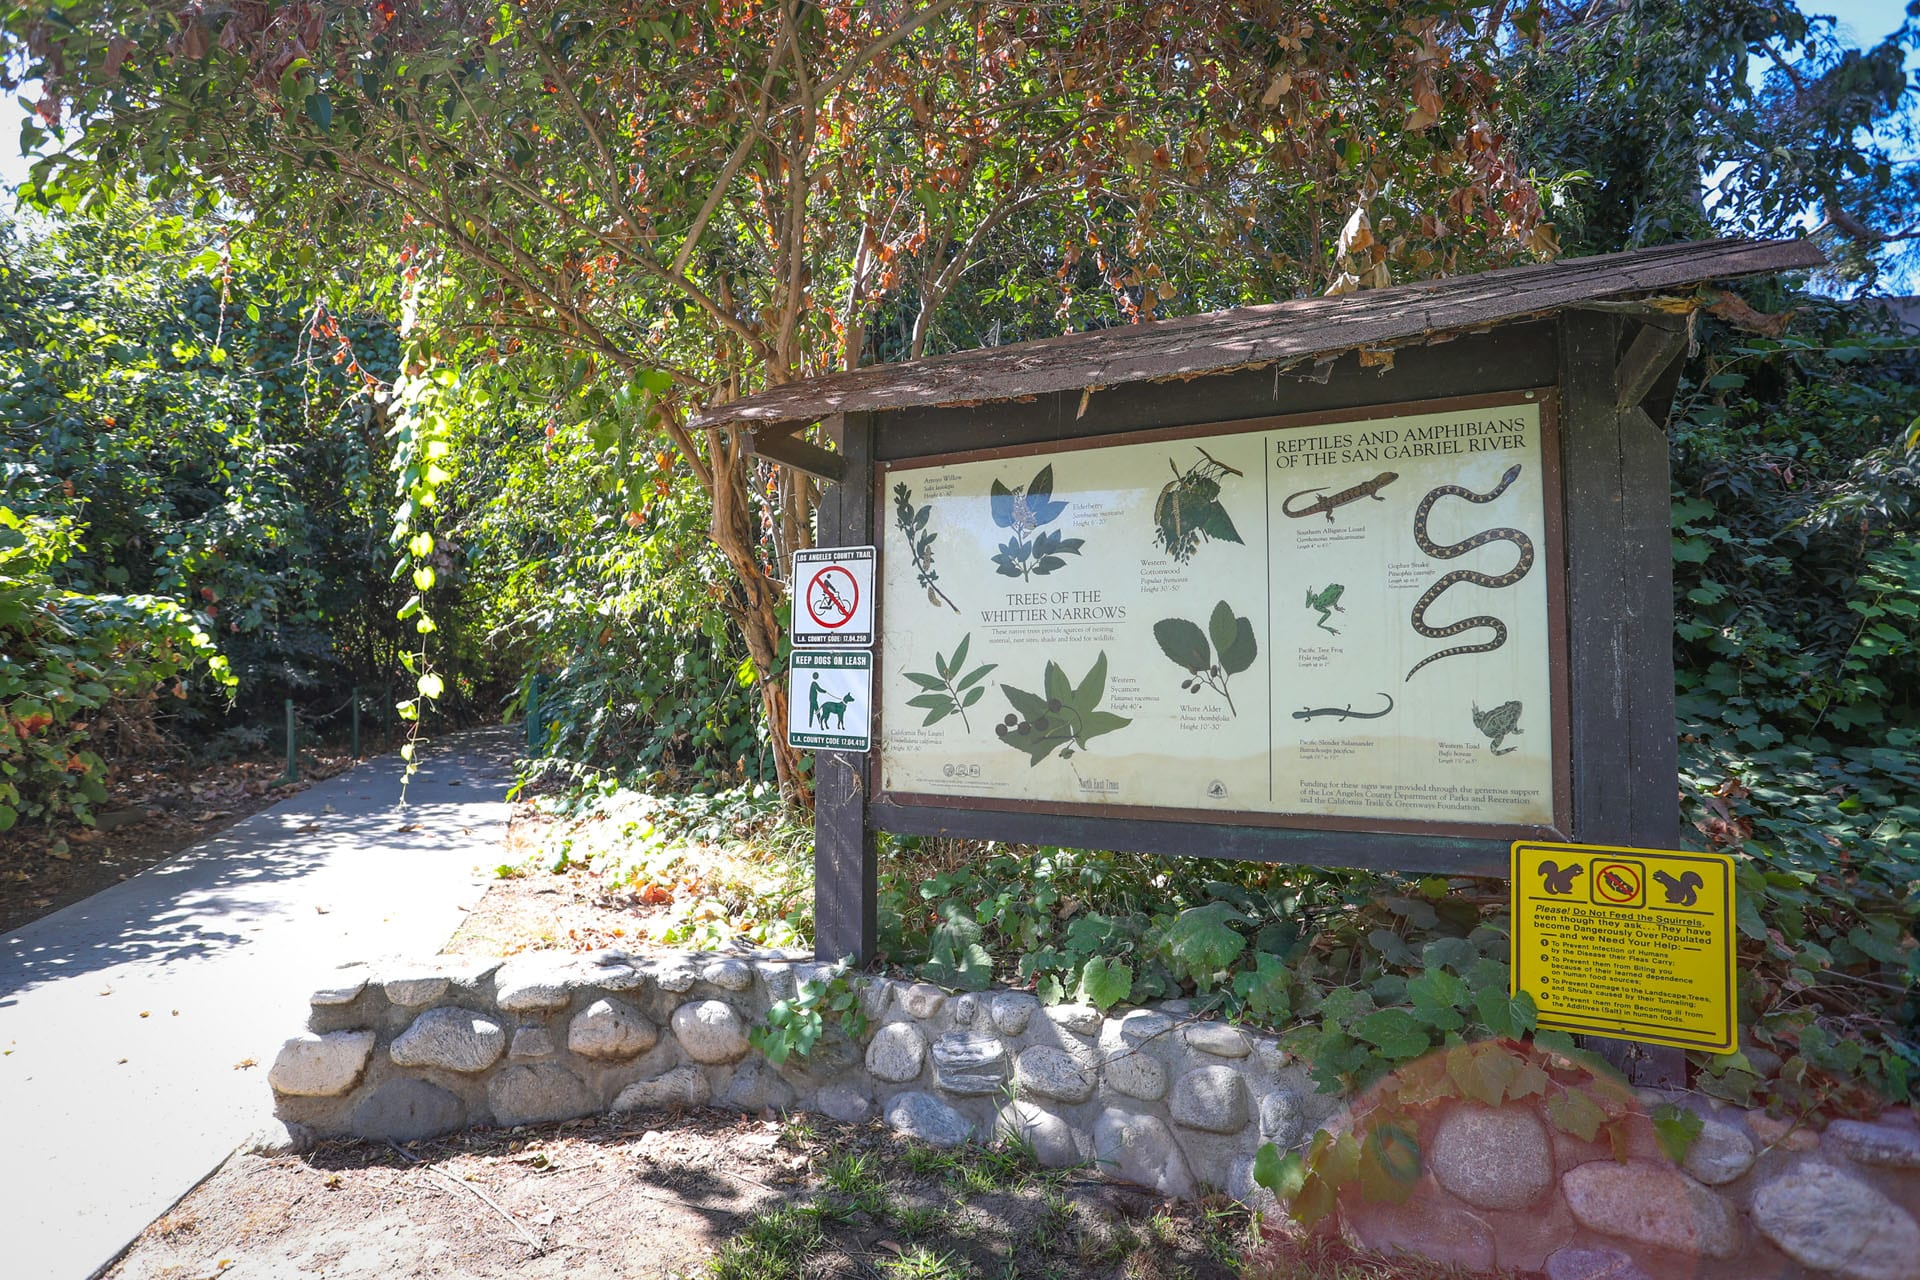 Informational sign next to garden walkway